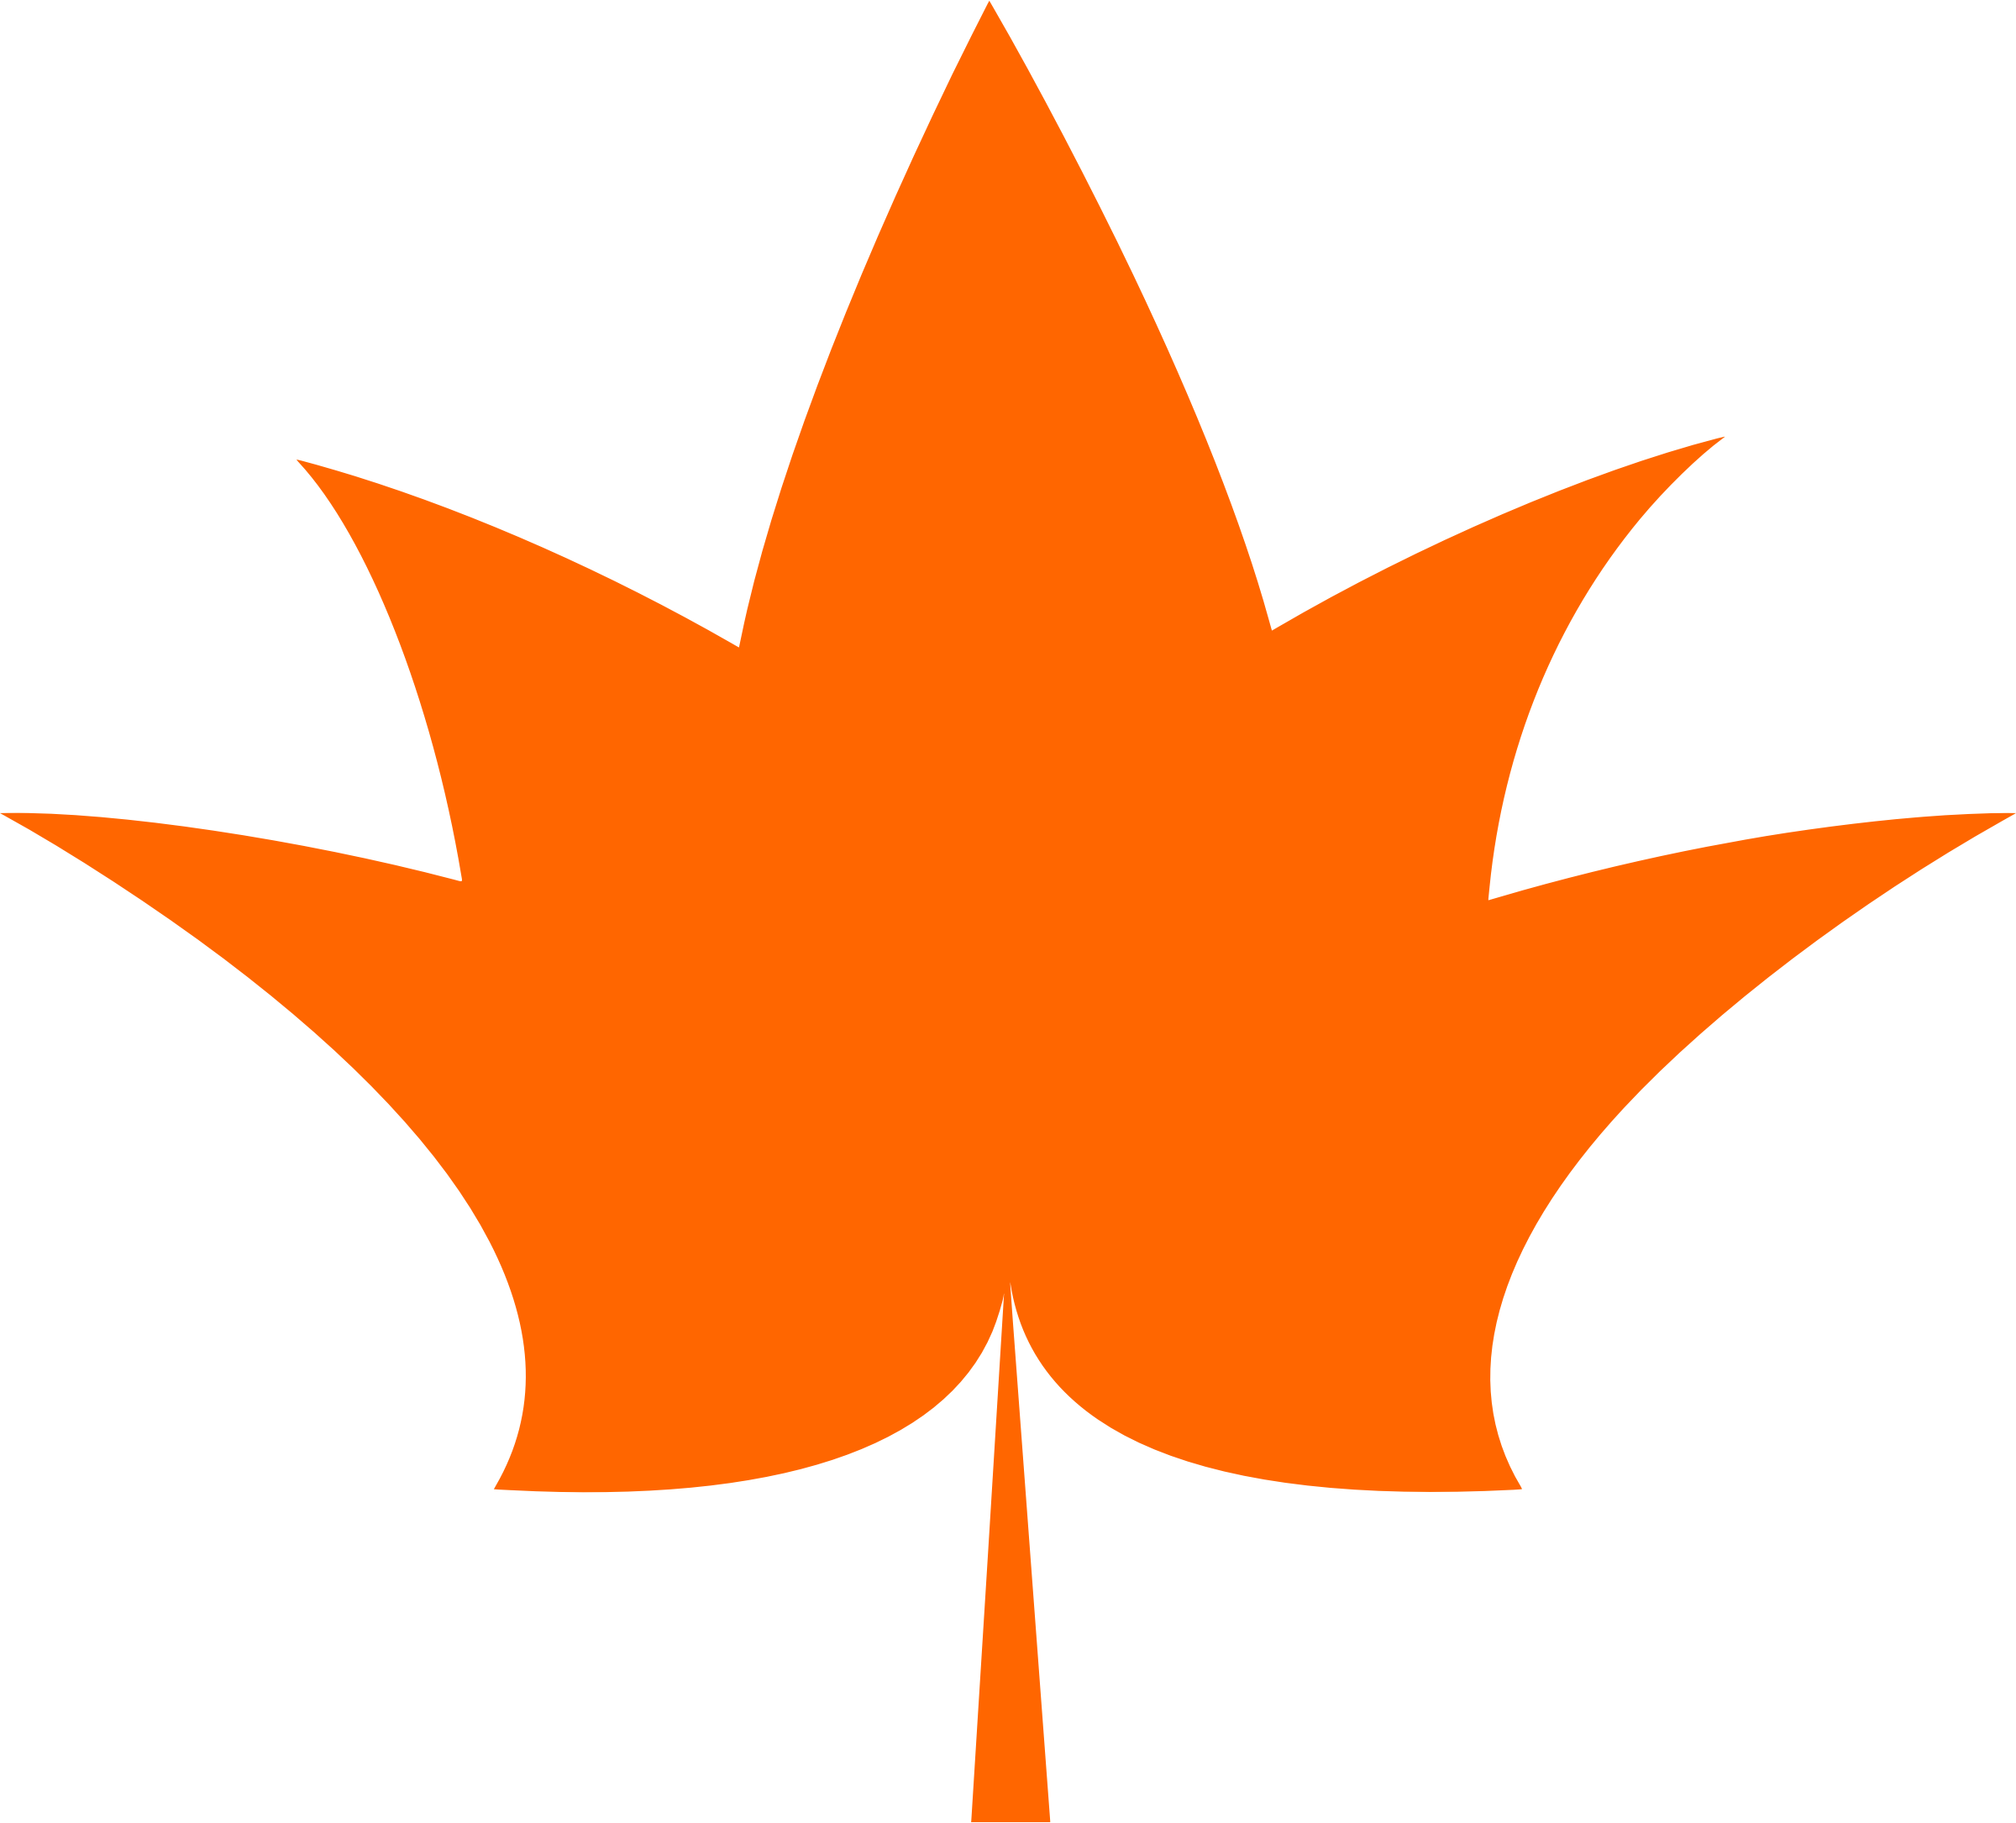 Maple leaf vectorized by Firkin